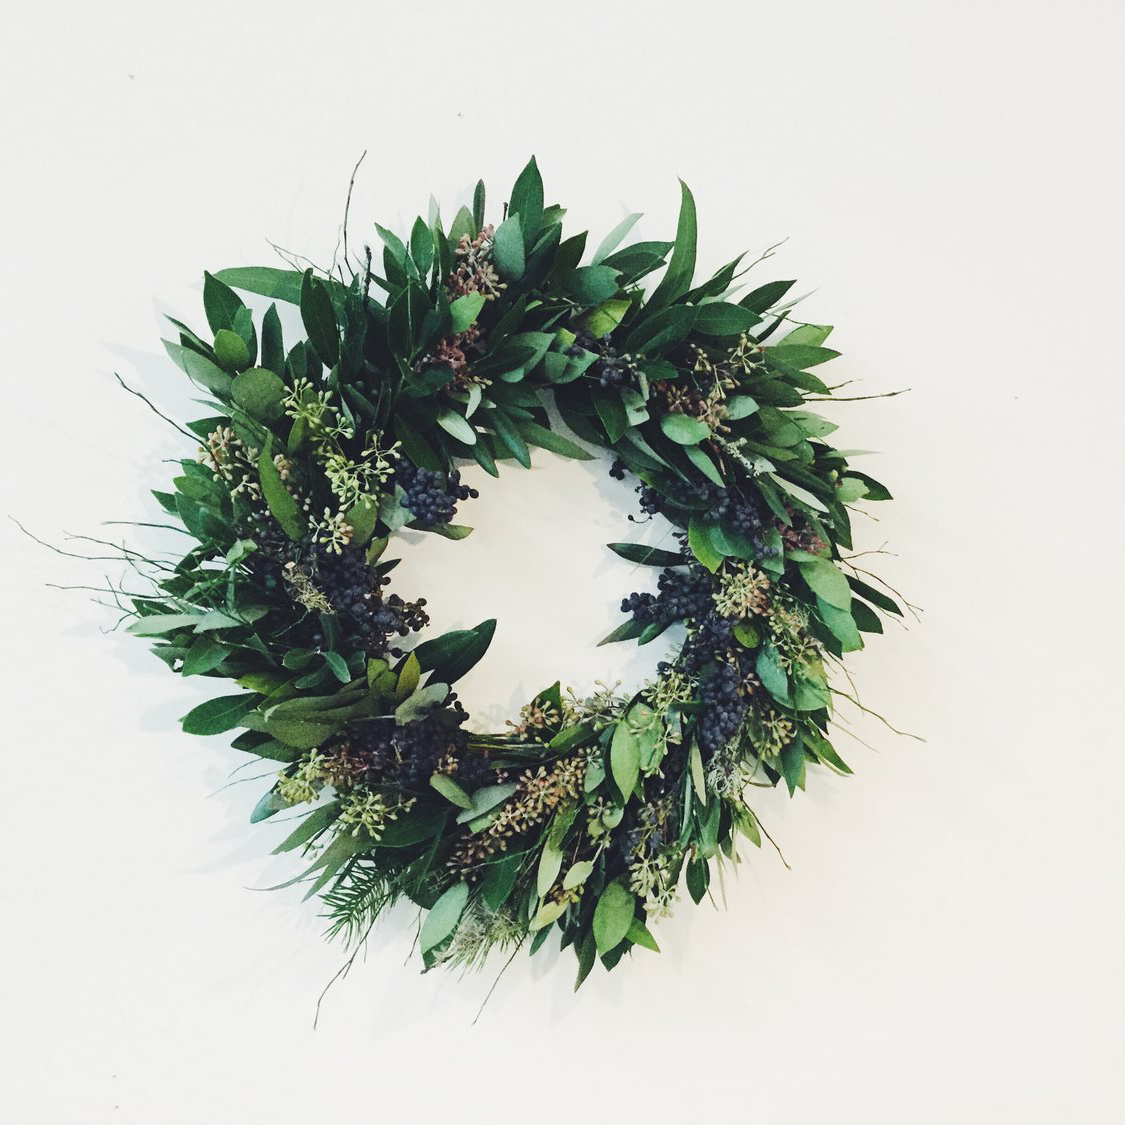 HandCraft Studio School - Create a lushly layered, naturally scented wreath with this Martha Stewart approved Bay Area florist.$80, Hosted by Rachel O'Neal on 12/1 & 12/2